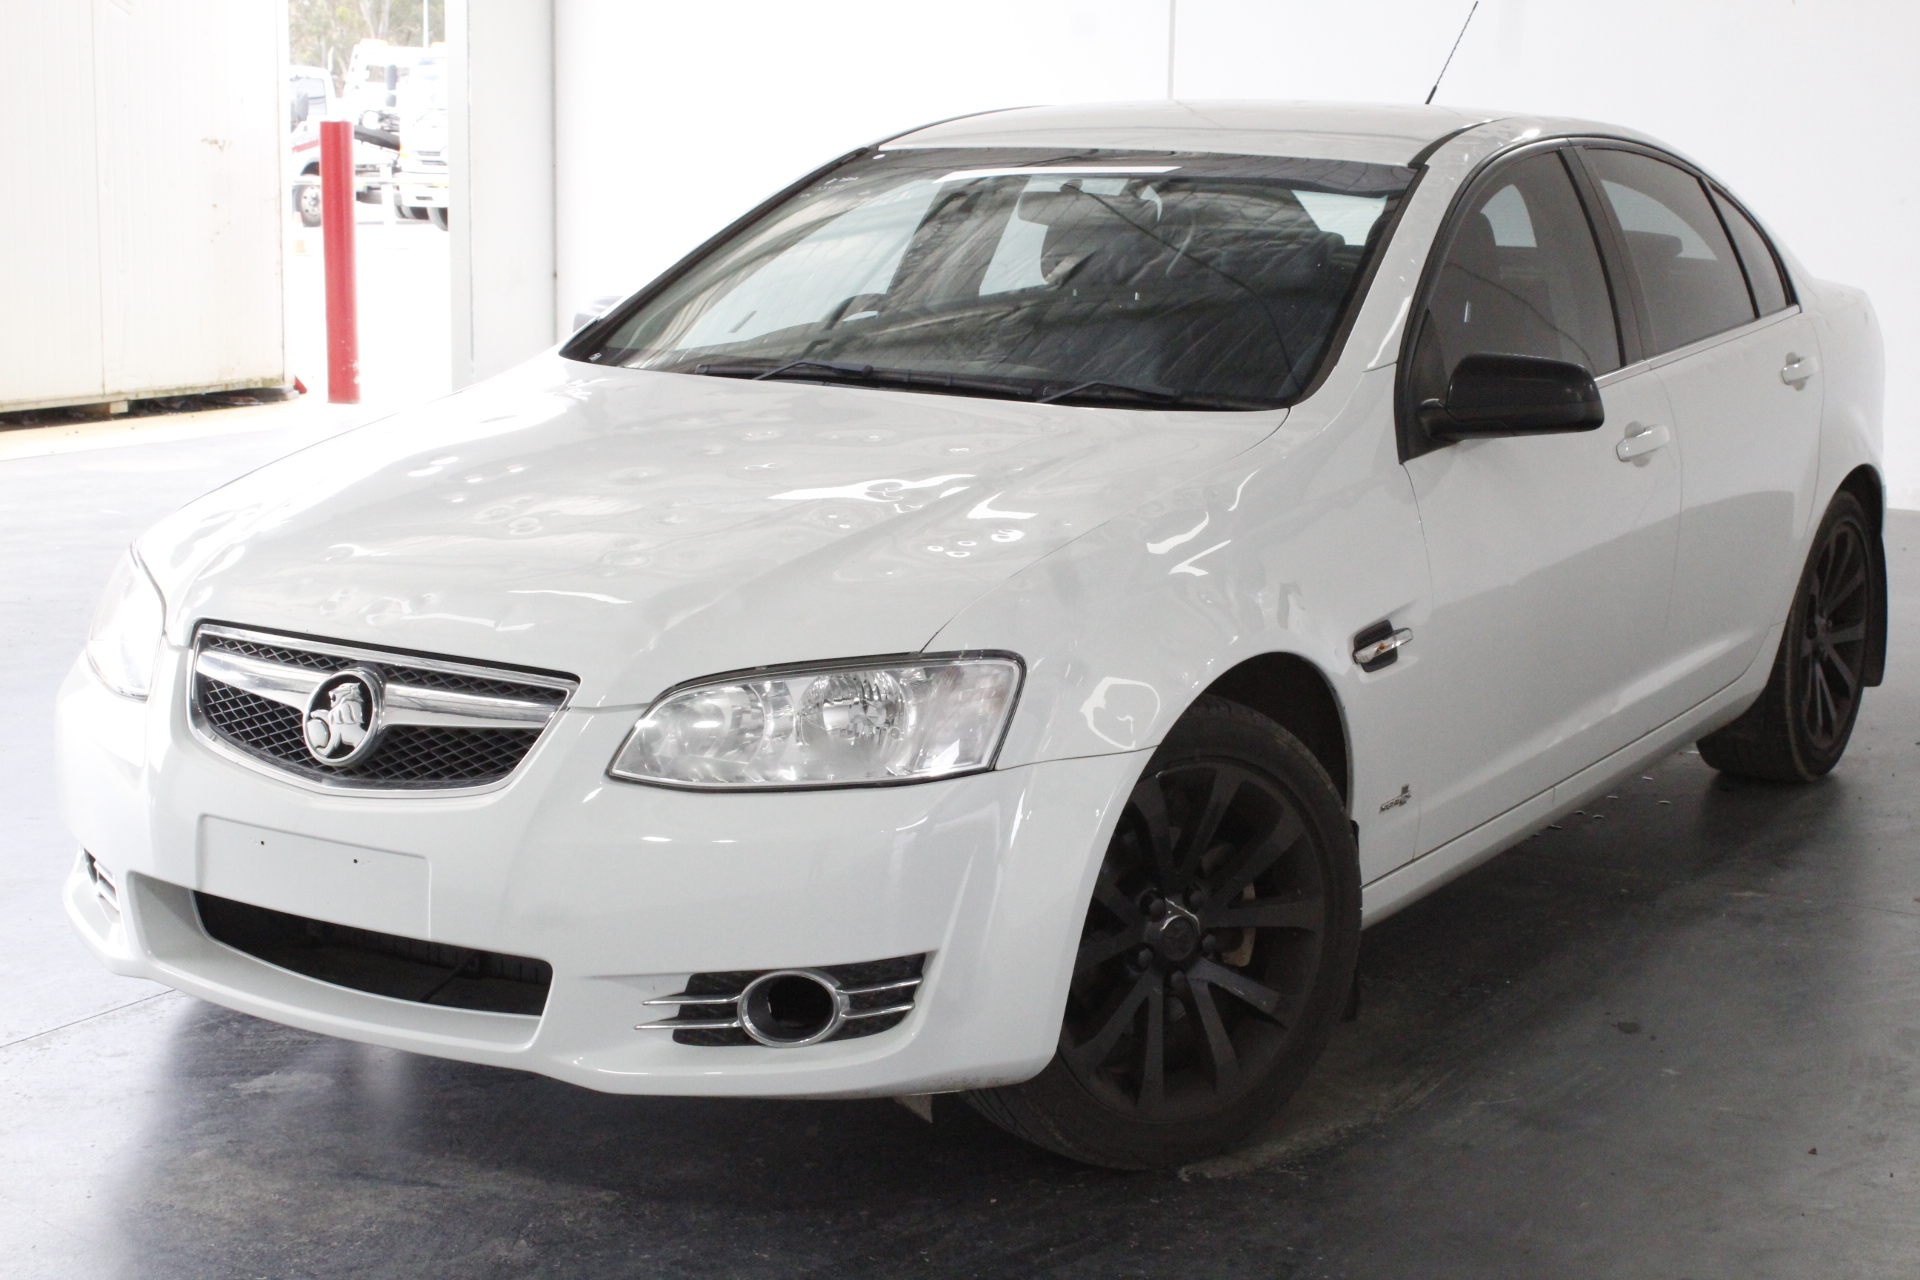 2011 Holden Commodore Omega VE (WOVR Inspected)